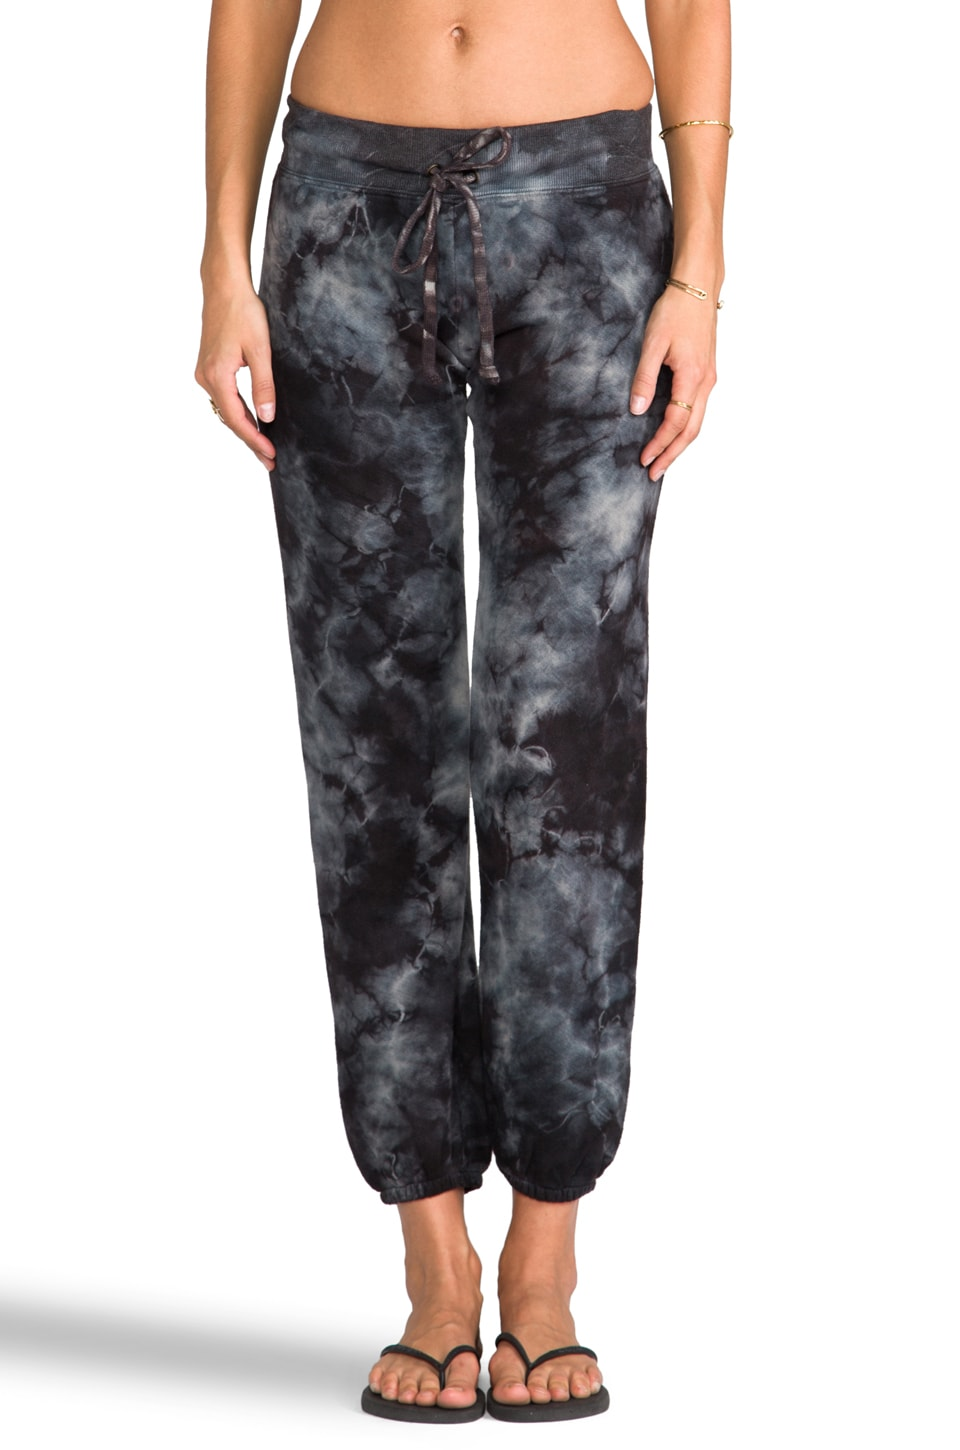 291 Tie Dye Baggy Sweatpant in Haze